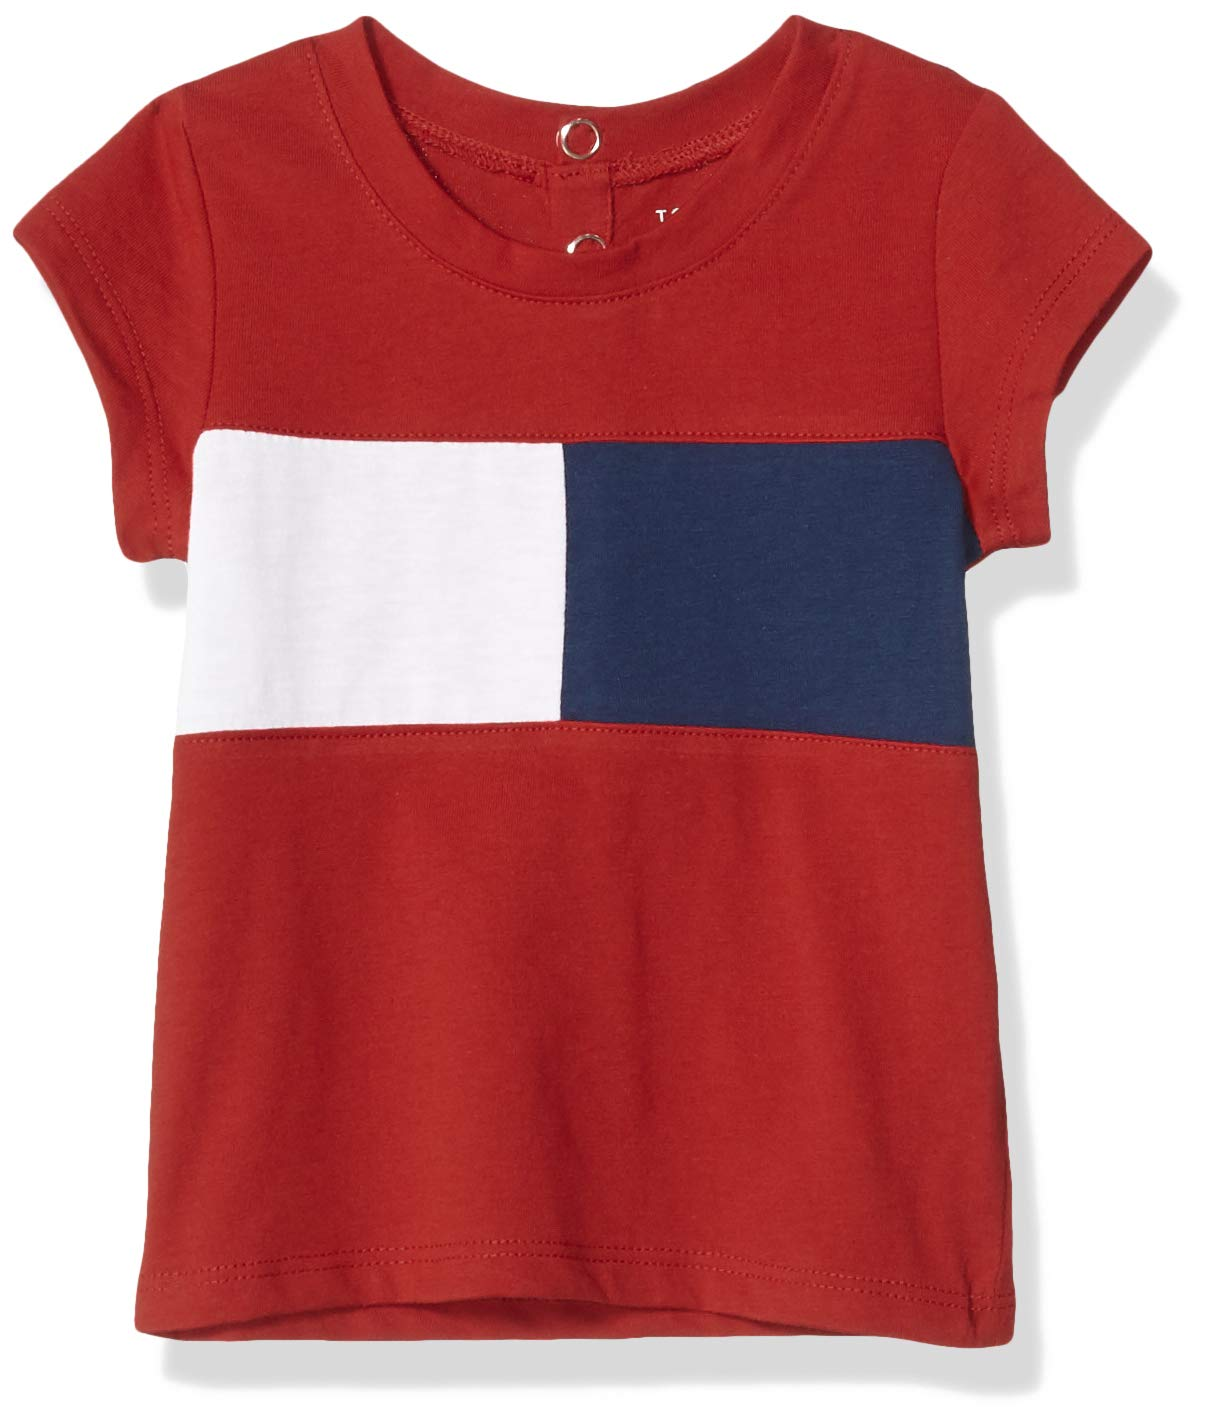 Tommy Hilfiger Girls' Core Short Sleeve Scoop Neck Tee Shirt